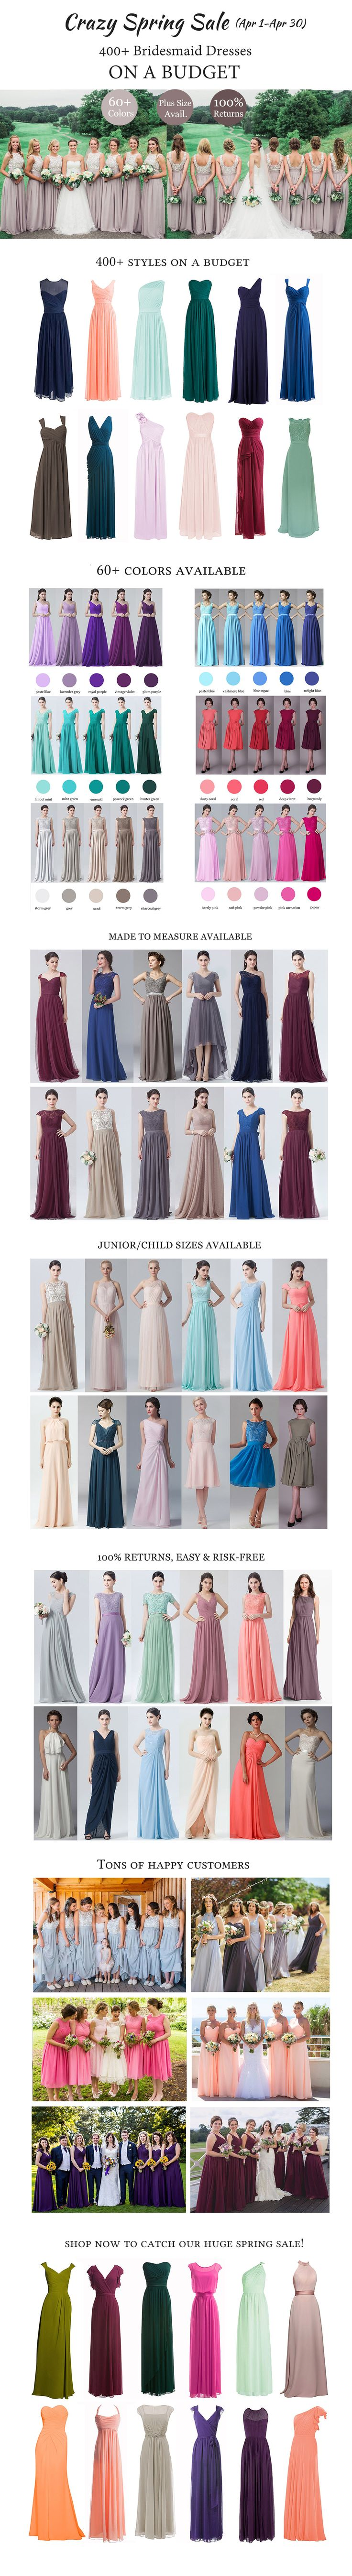 Now through Apr 30, Crazy Spring Sale on ALL FHFH bridesmaid dresses! Don't miss it!